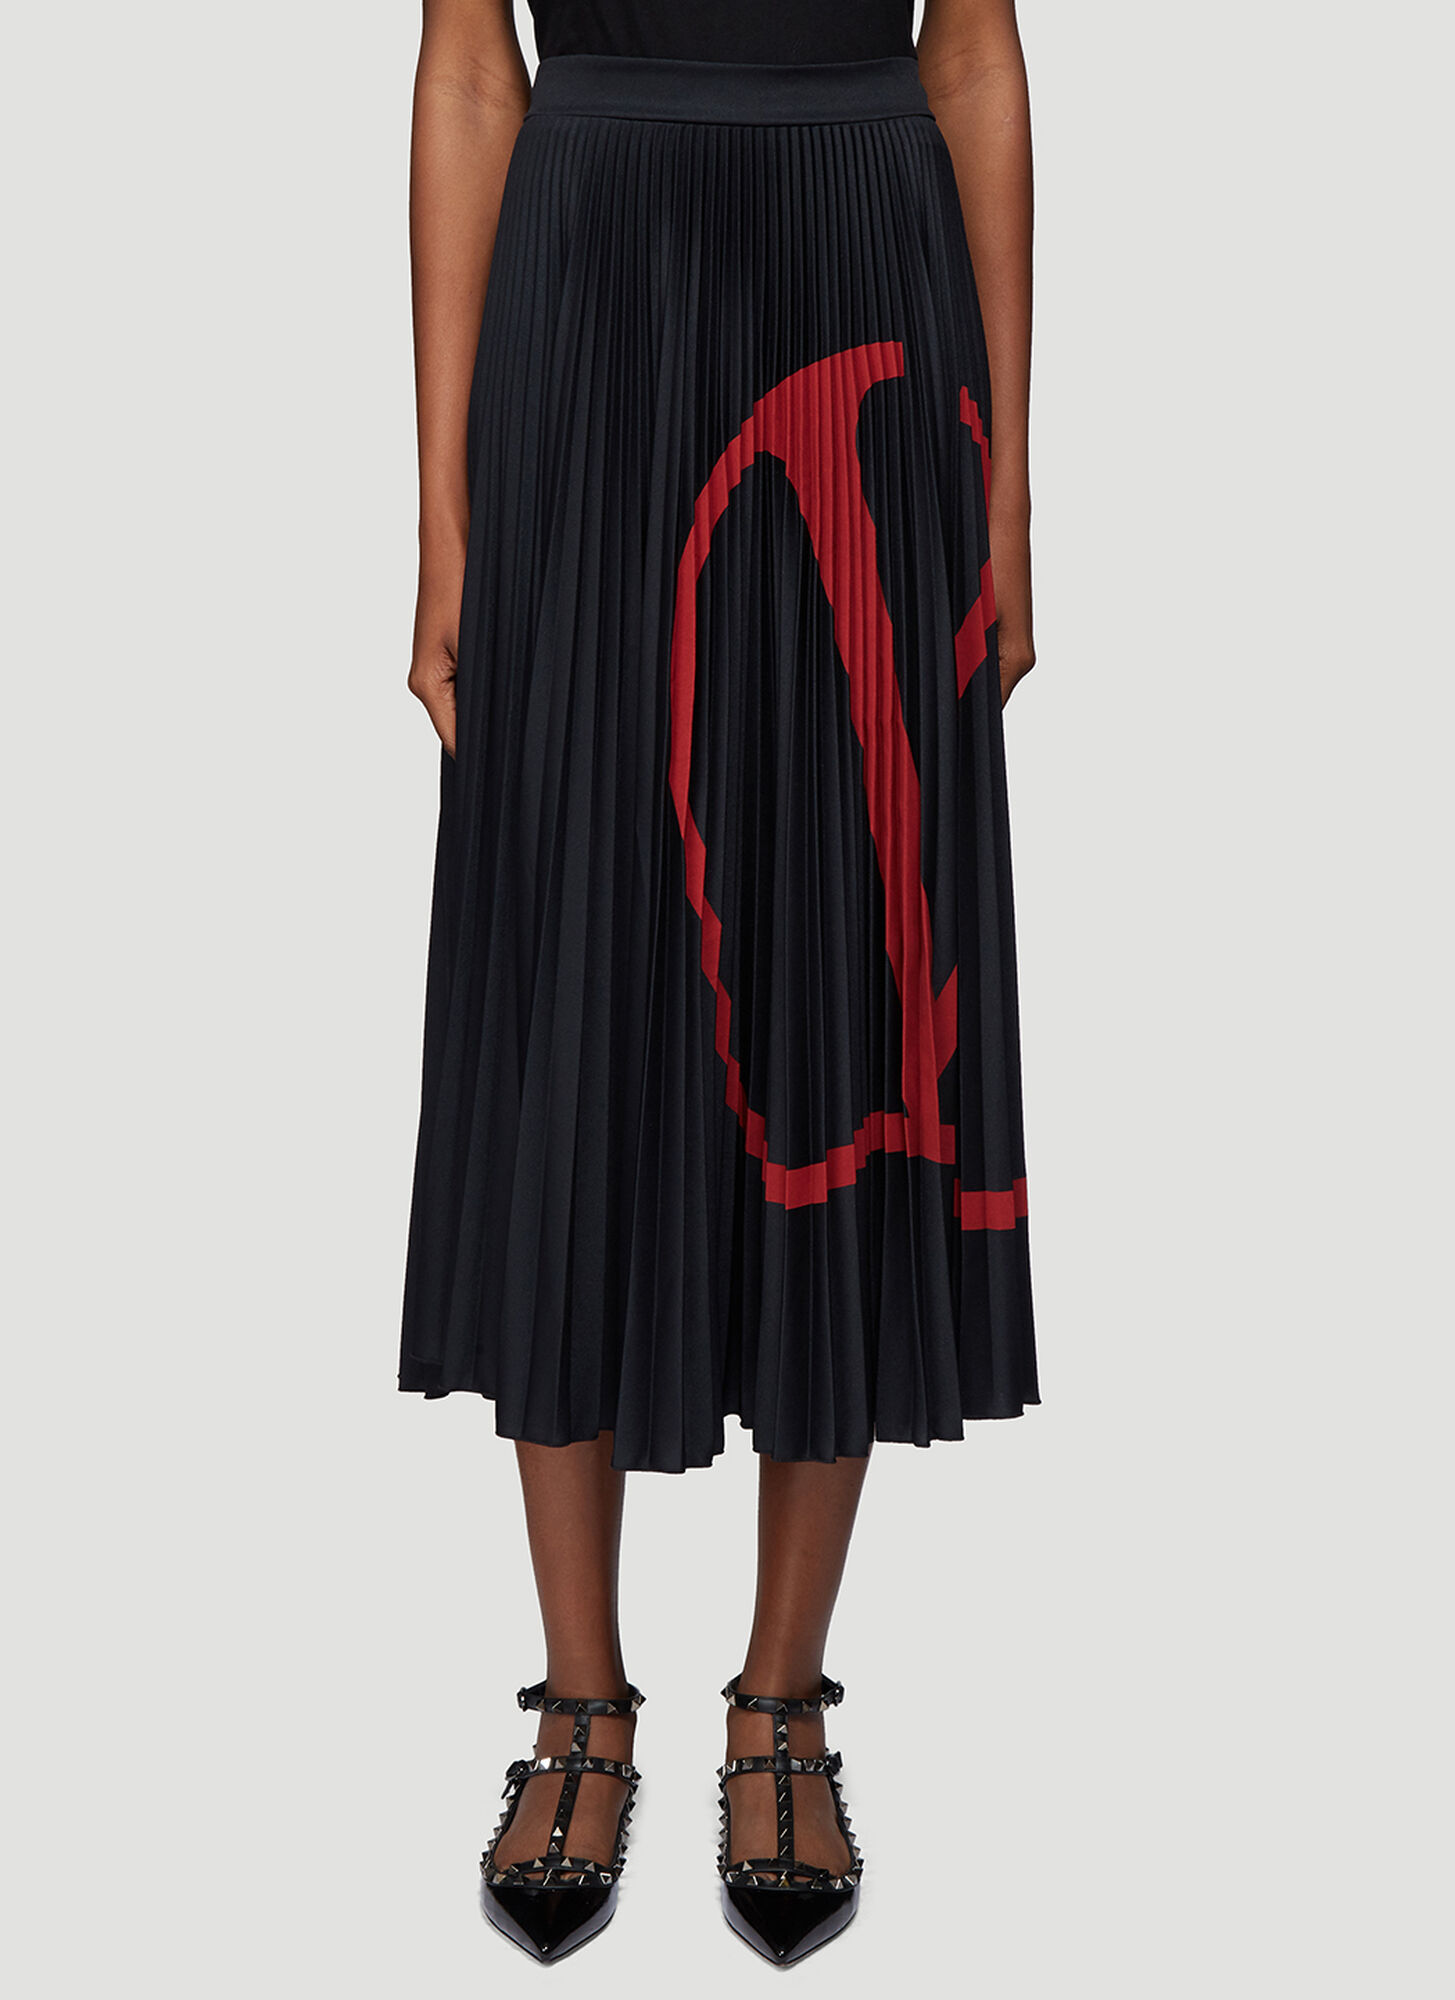 Valentino Logo Print Pleated Skirt in Black